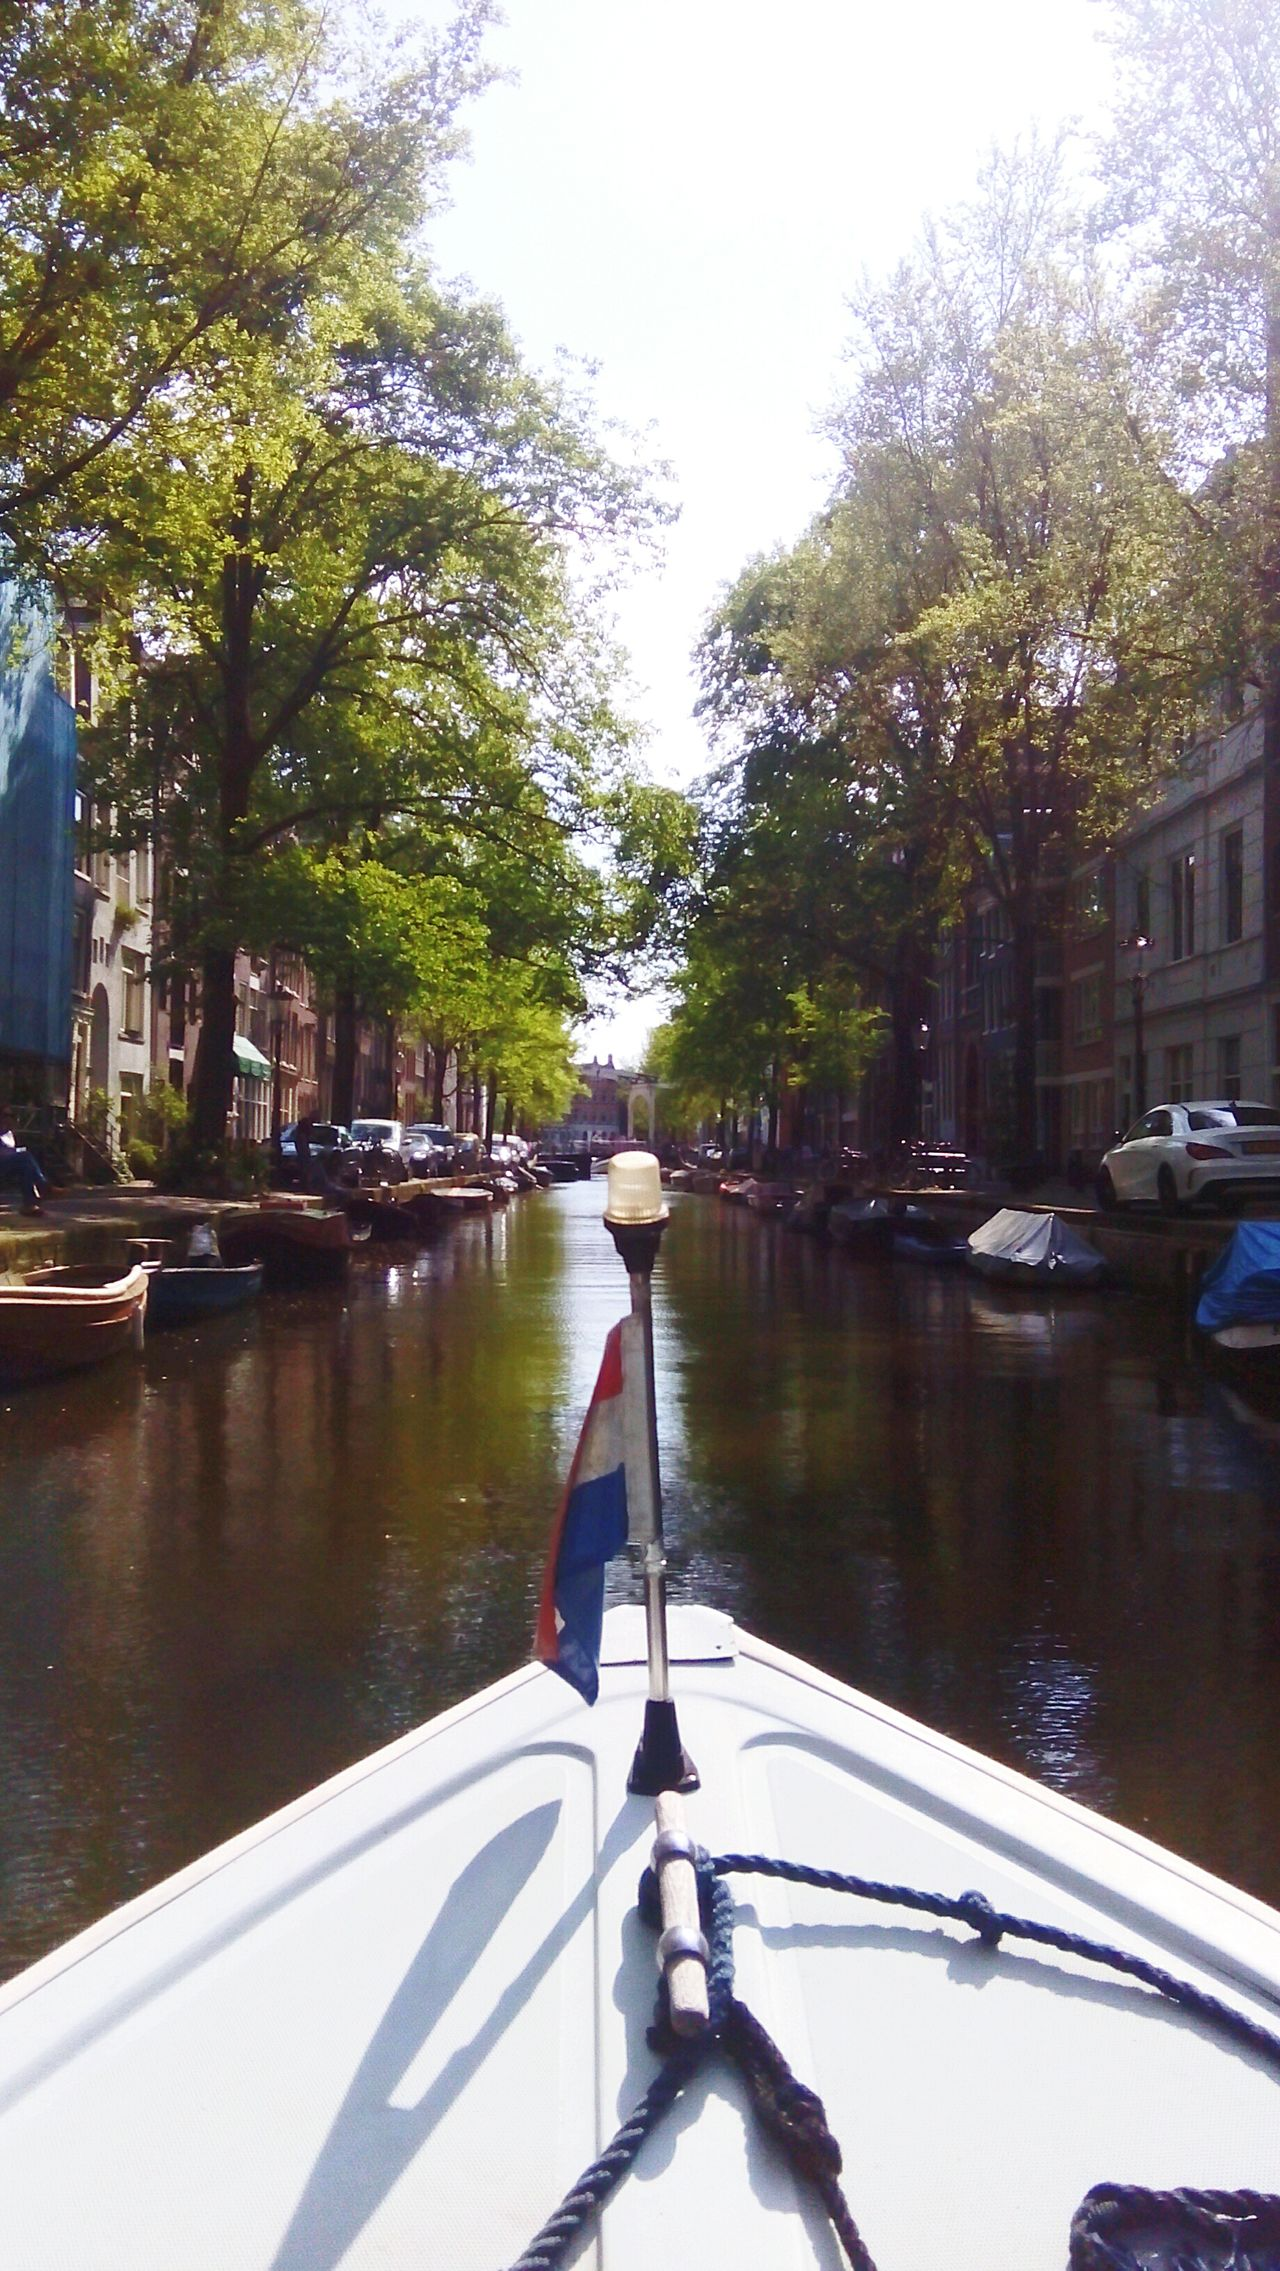 Workingintheworld Livingintheworld Amsterdam Netherlands Travel Destinations Mode Of Transport City Life Canal